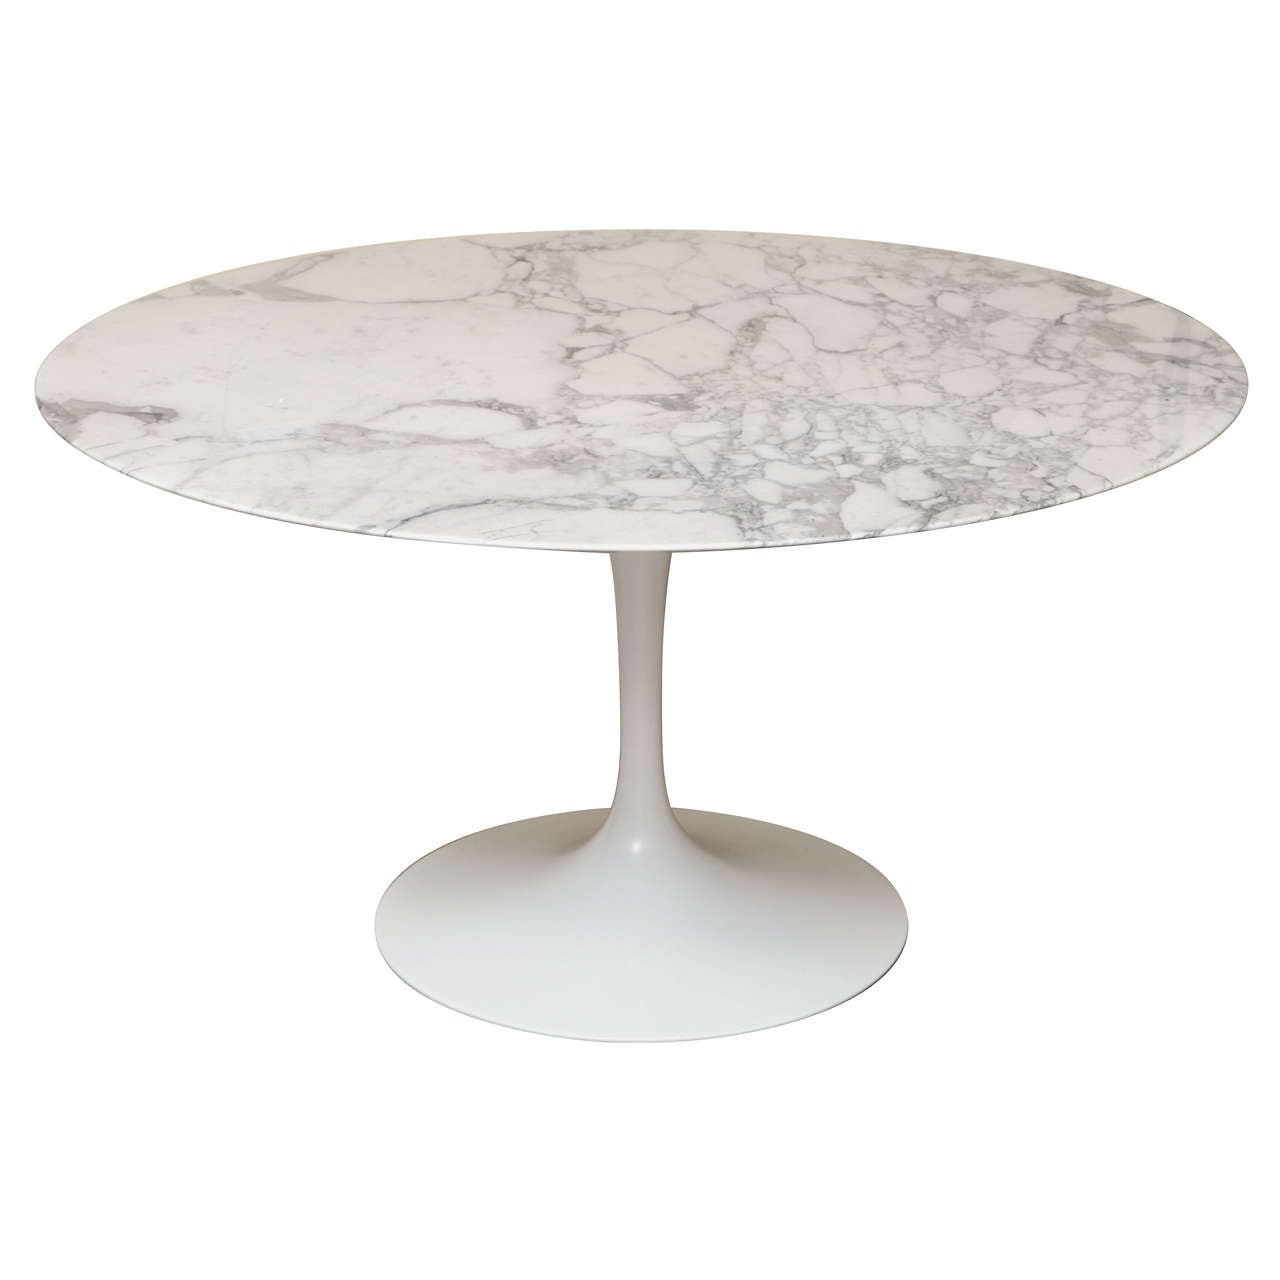 dining table marble dining table round: round white marble dining table